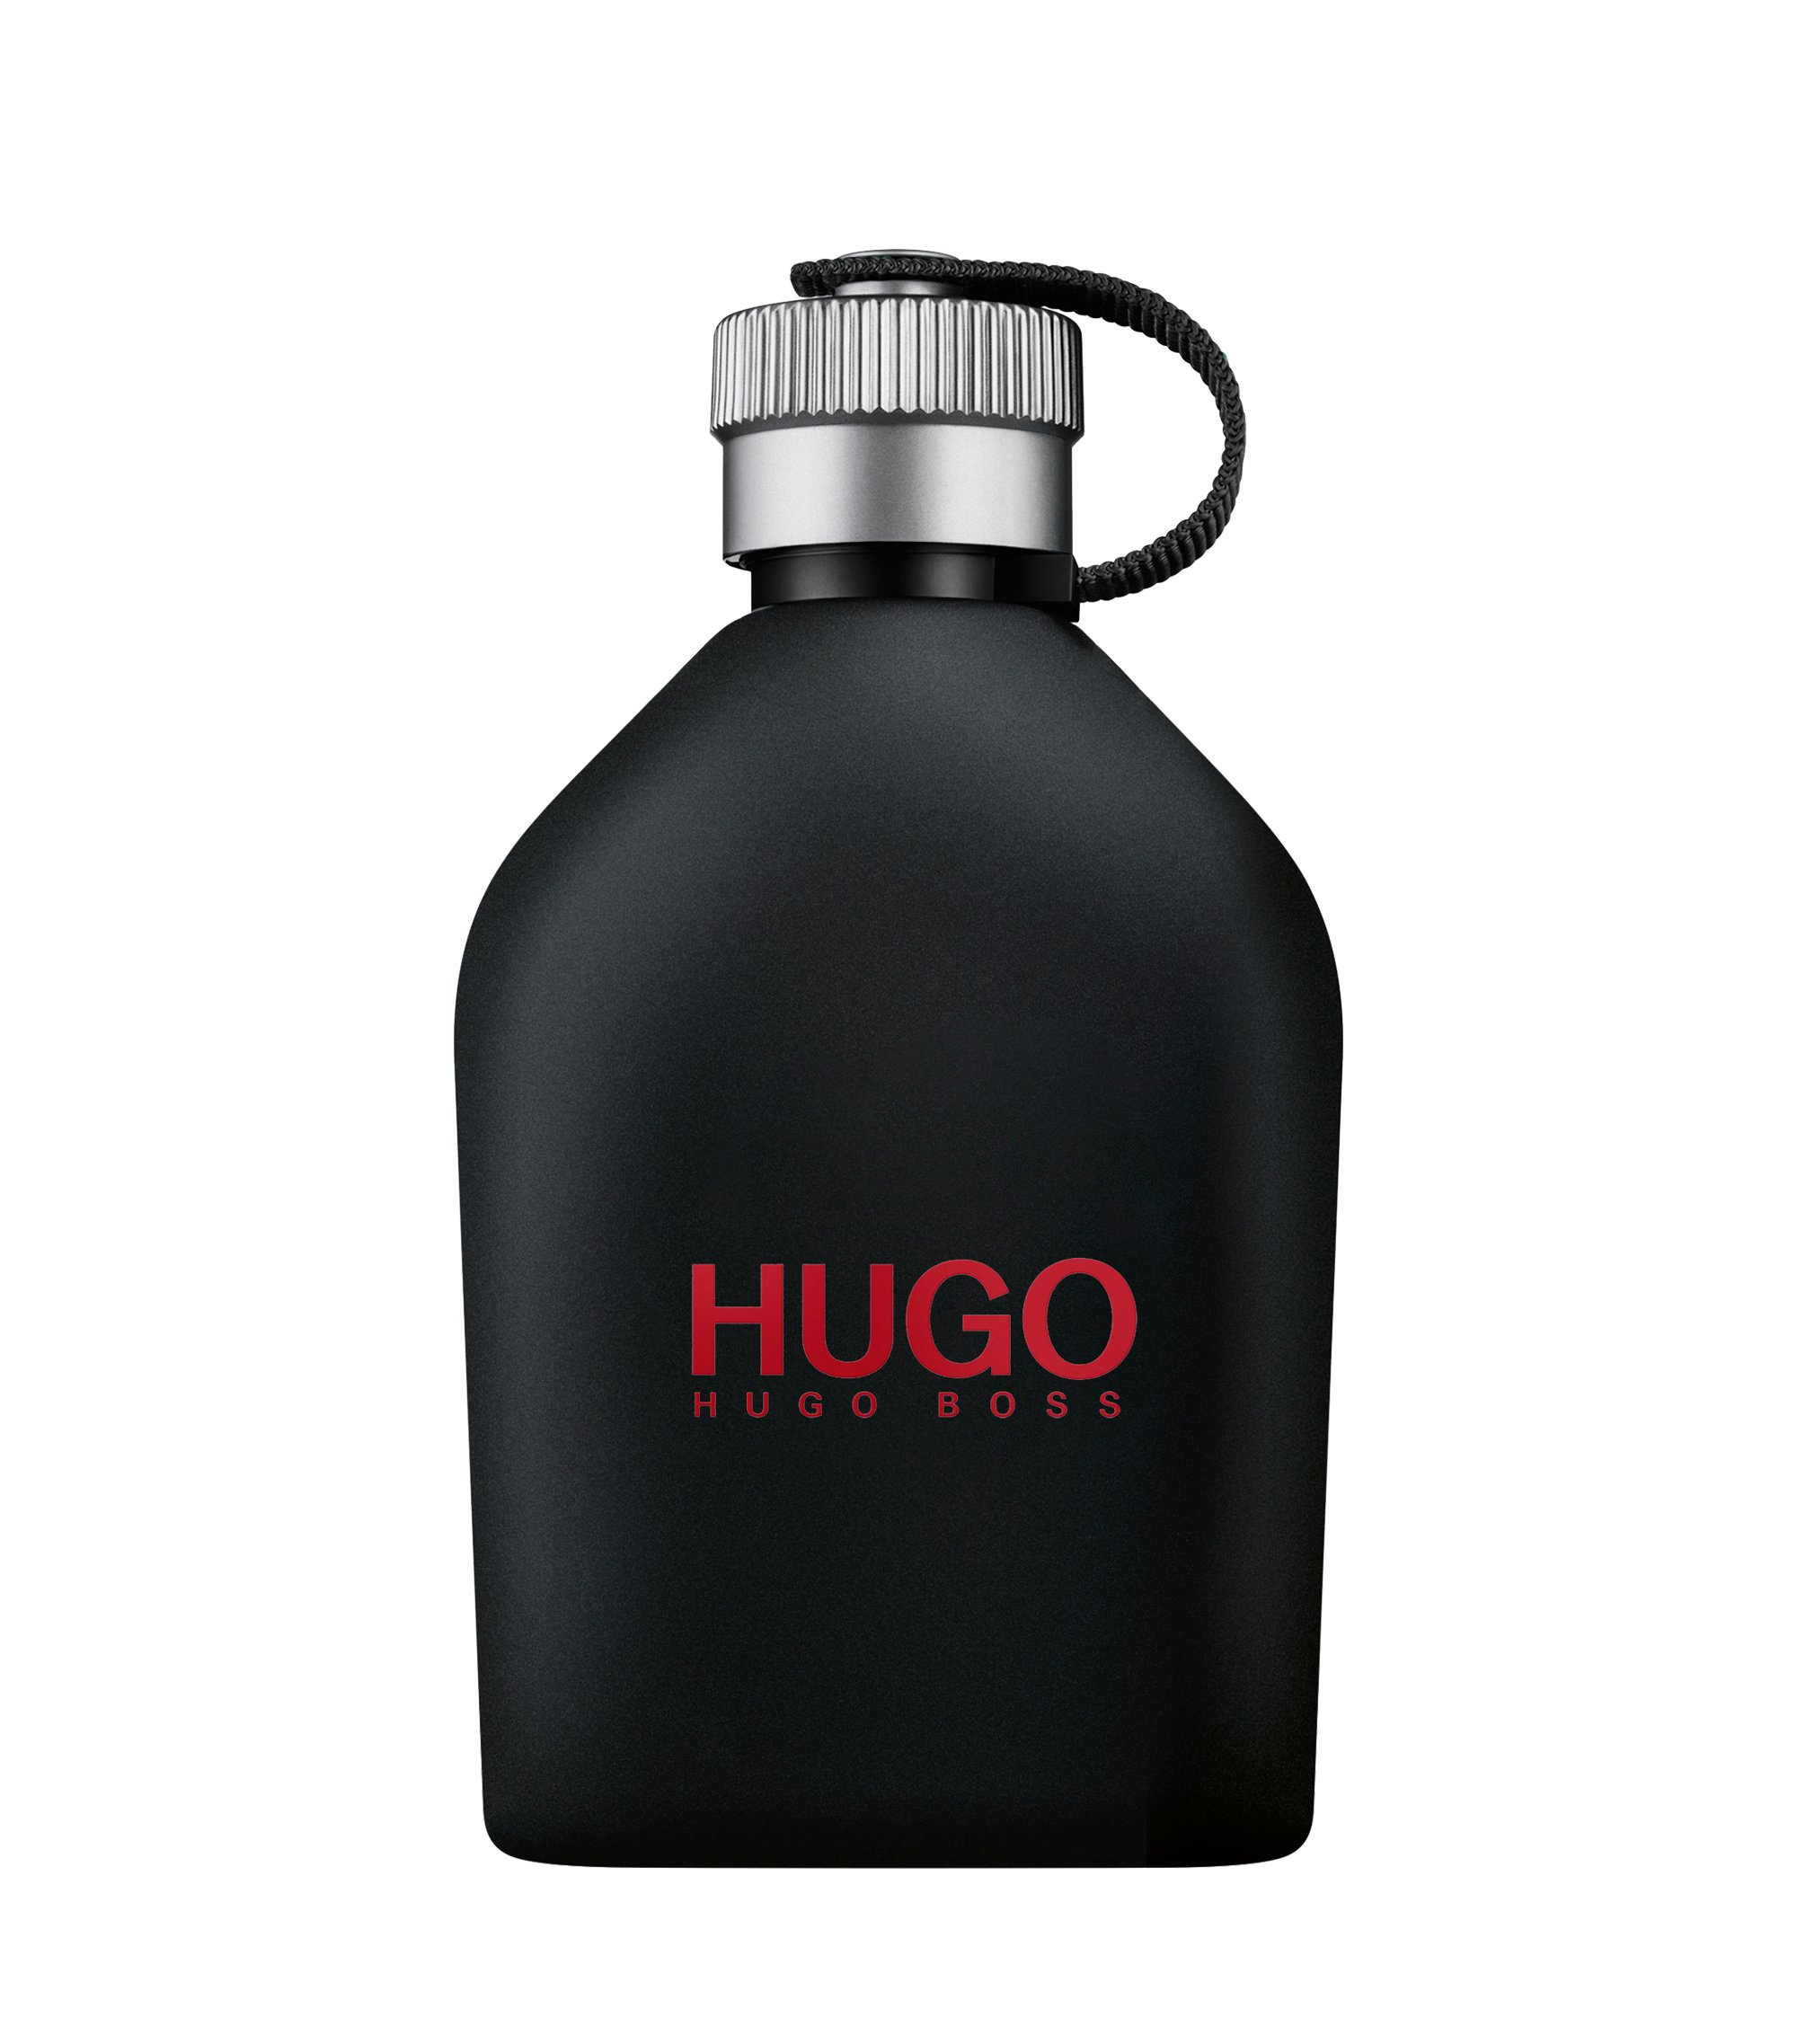 Eau de toilette HUGO Just Different da 200 ml, Assorted-Pre-Pack